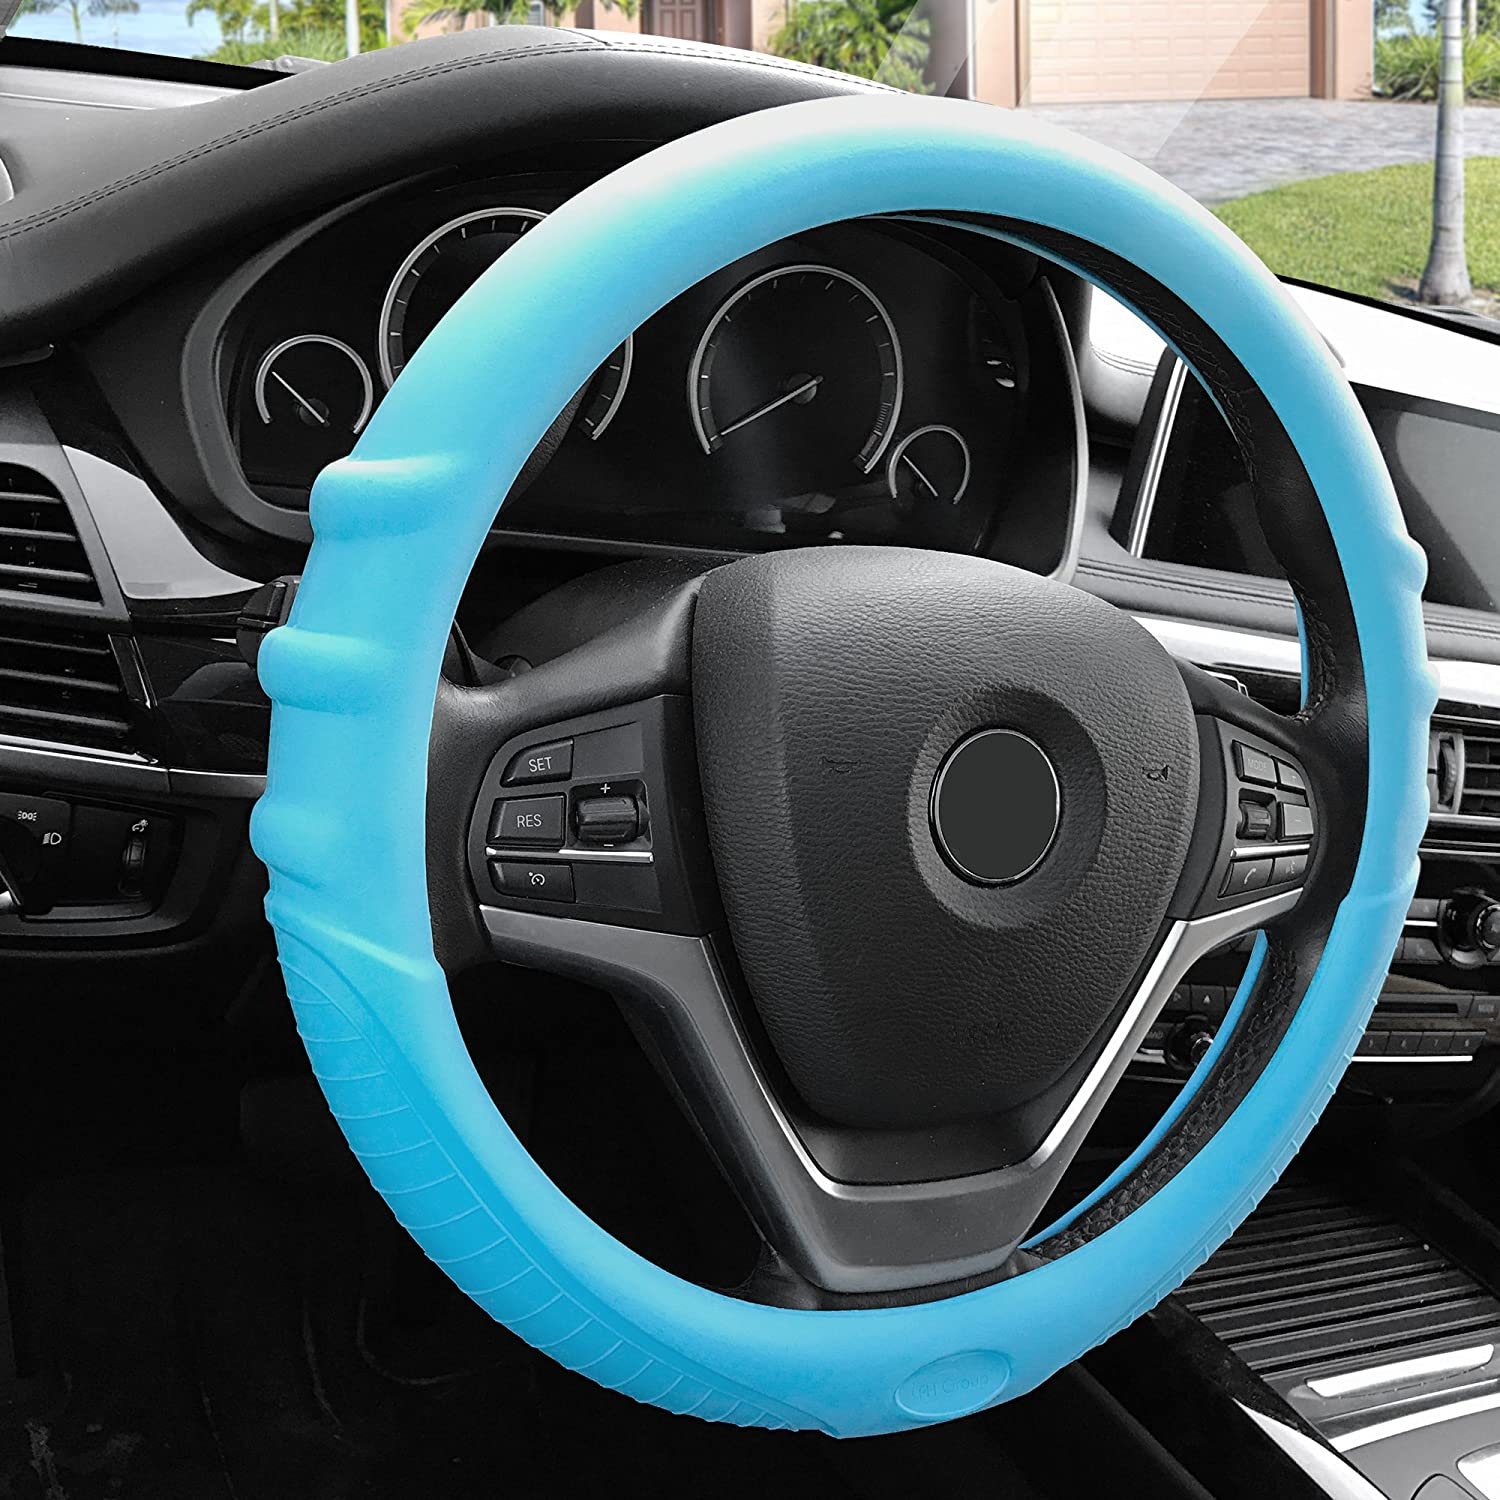 Silicone W. Grip /& Pattern Massaging grip Red Color-Fit Most Car Truck Suv or Van FH Group FH3003RED Red Steering Wheel Cover